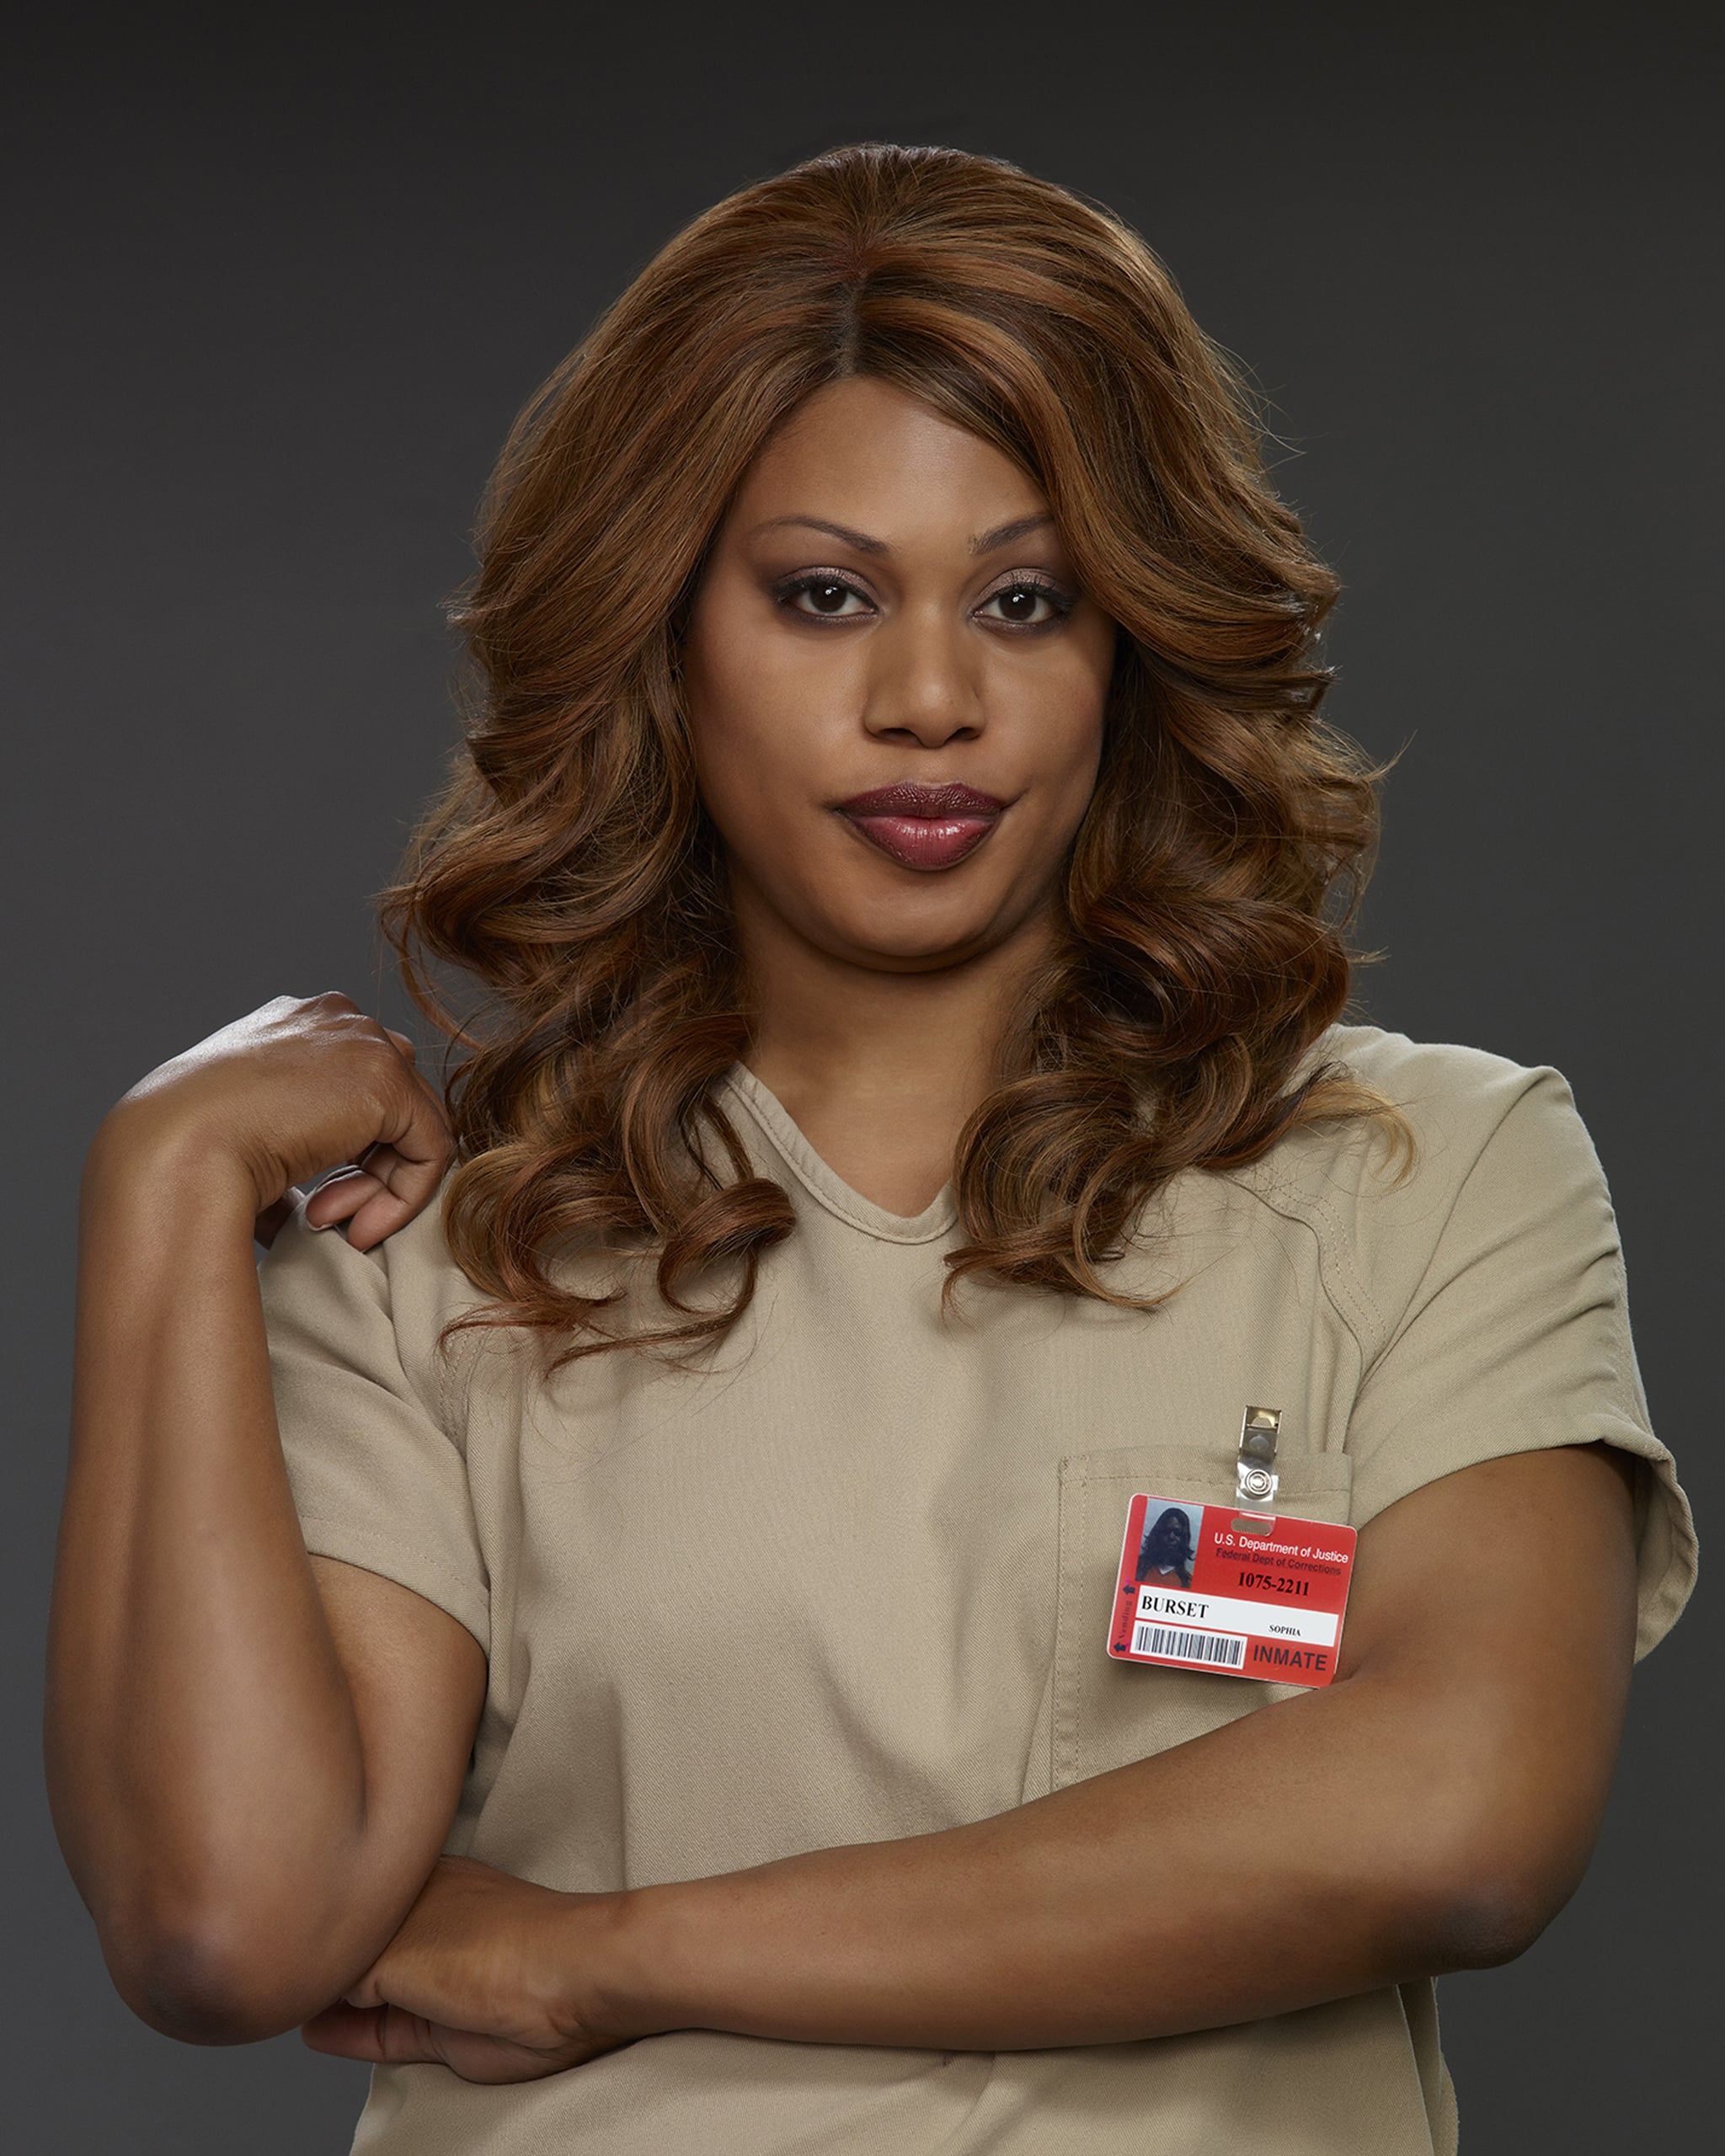 Laverne Cox as Sophia Burset | The Cast of Orange Is the New Black Looks Way Different in Other Roles | POPSUGAR Entertainment Photo 22